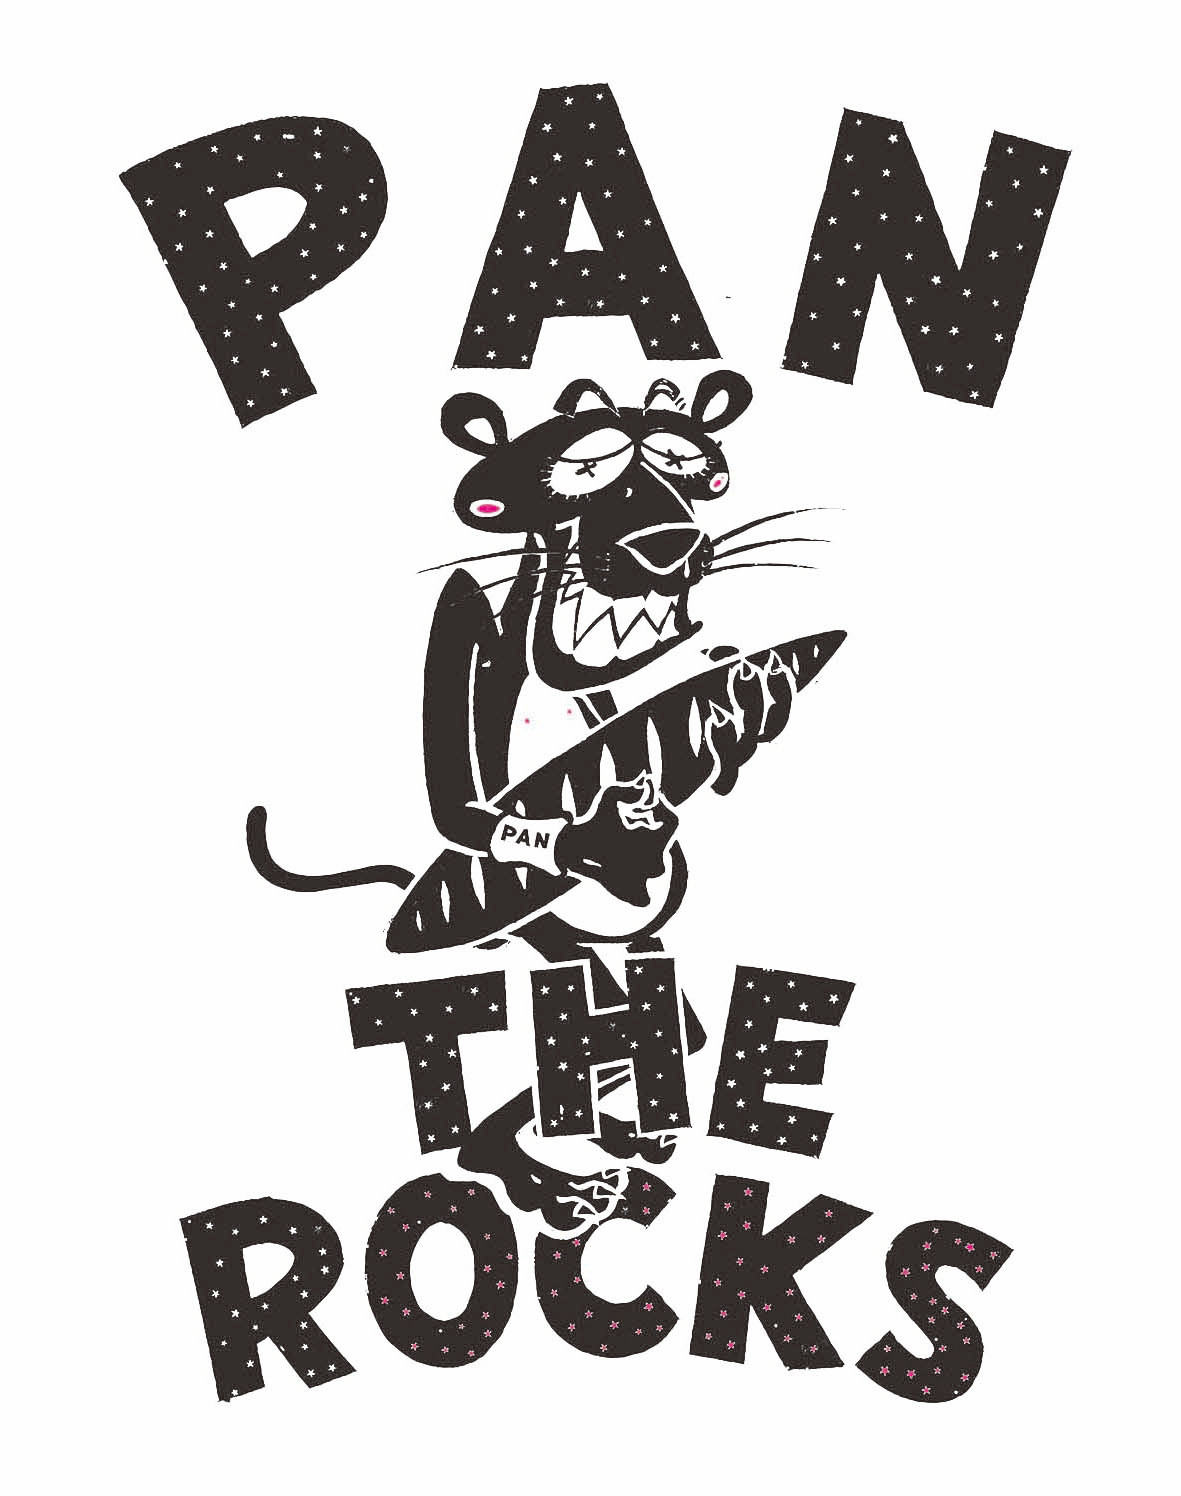 PAN / PANTHEROCK